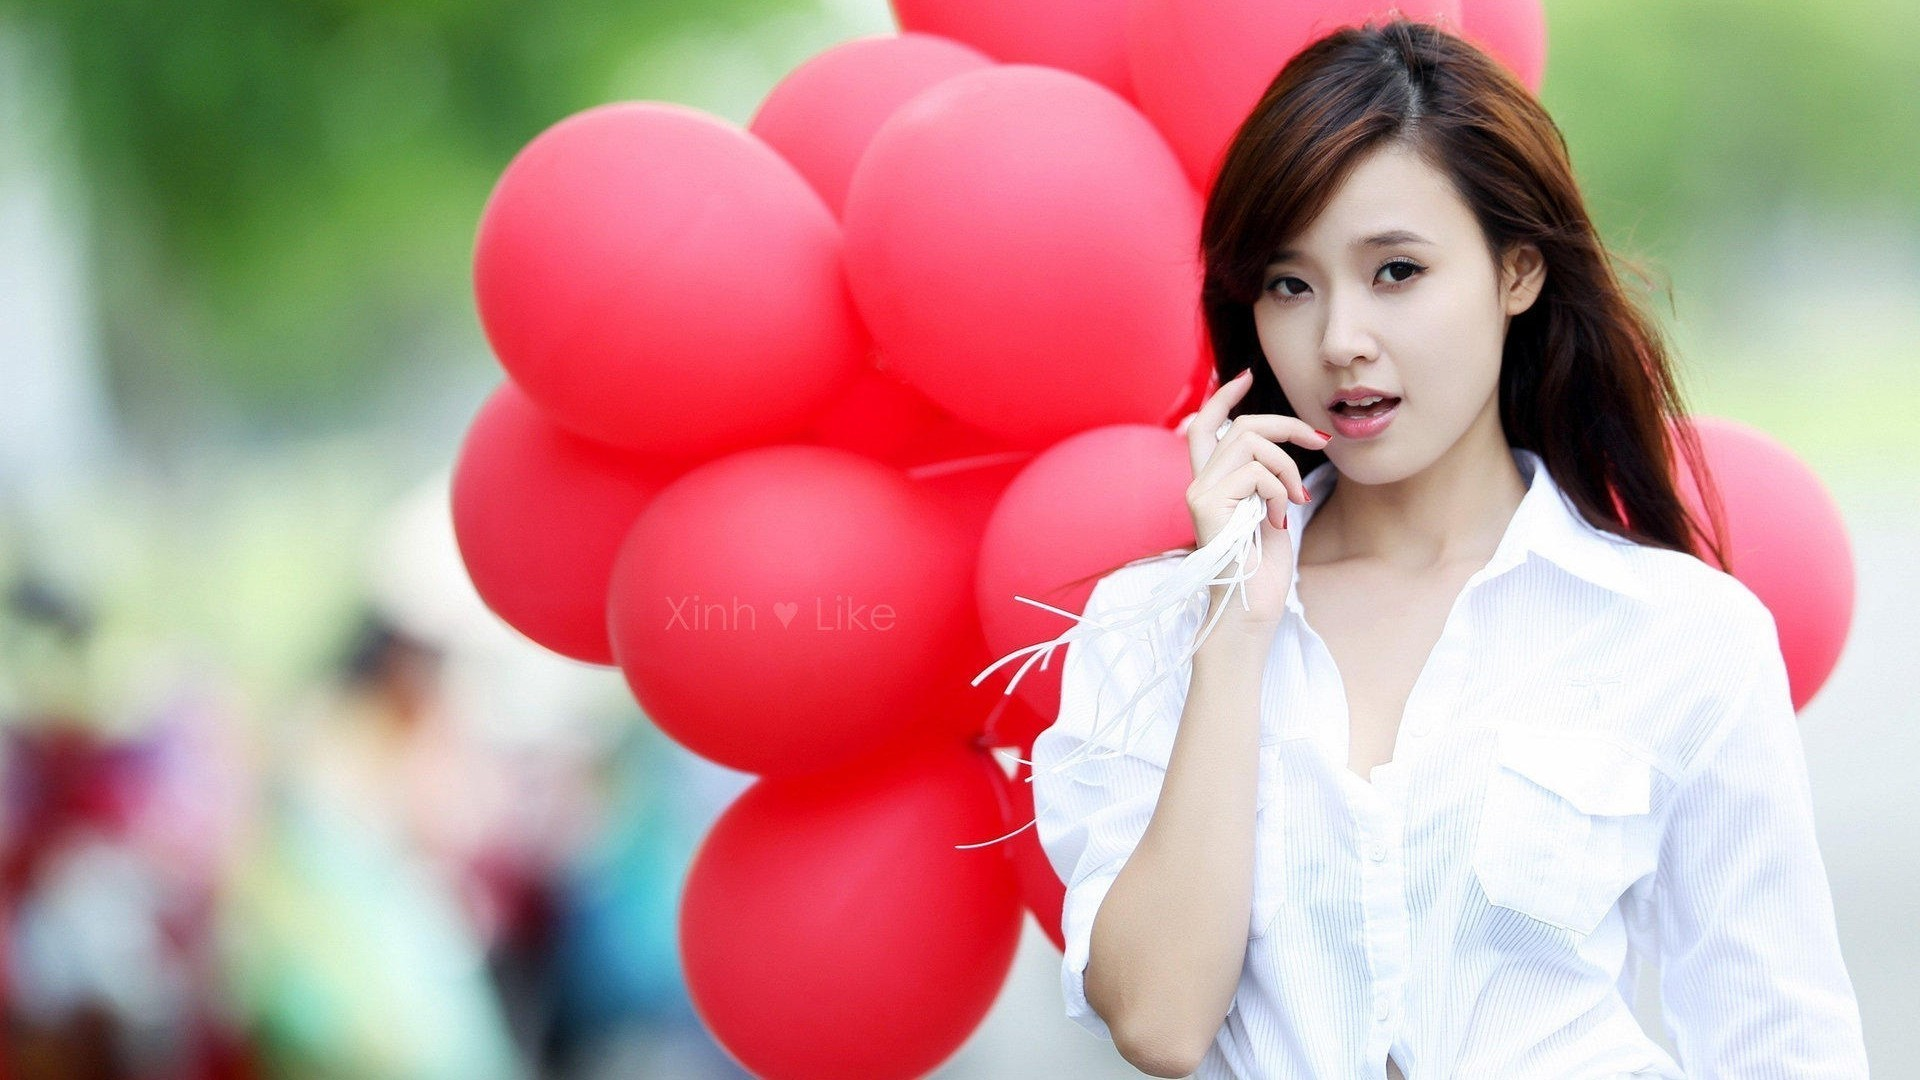 1920x1080 Beautiful girl with balloons wallpaper